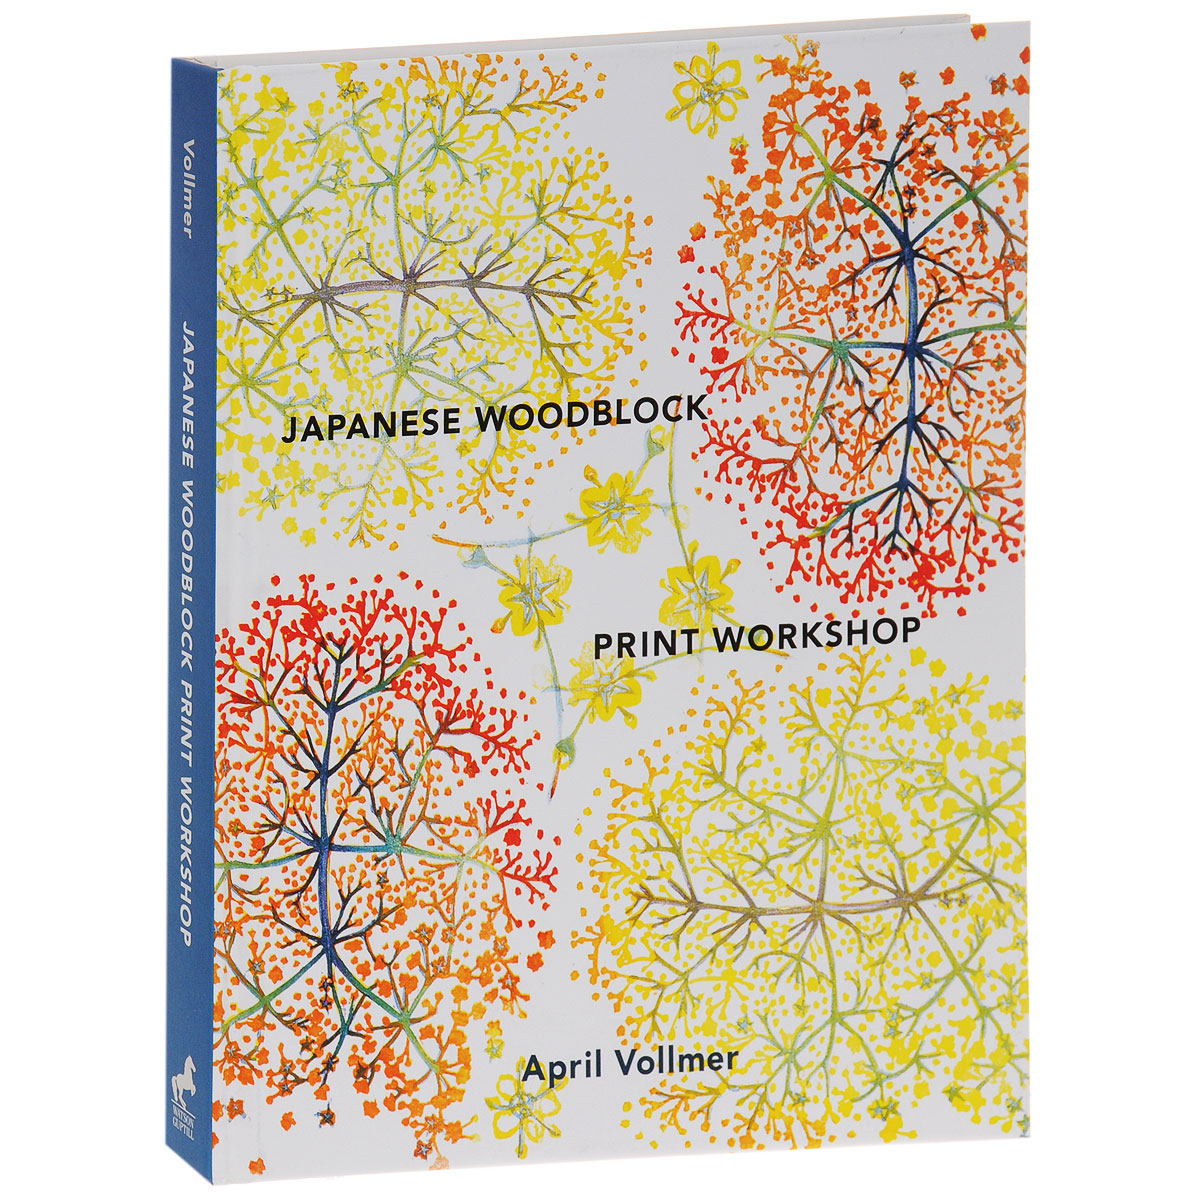 Japanese Woodblock Print Workshop: A Modern Guide to the Ancient Art of Mokuhanga stewart a kodansha s hiragana workbook a step by step approach to basic japanese writing